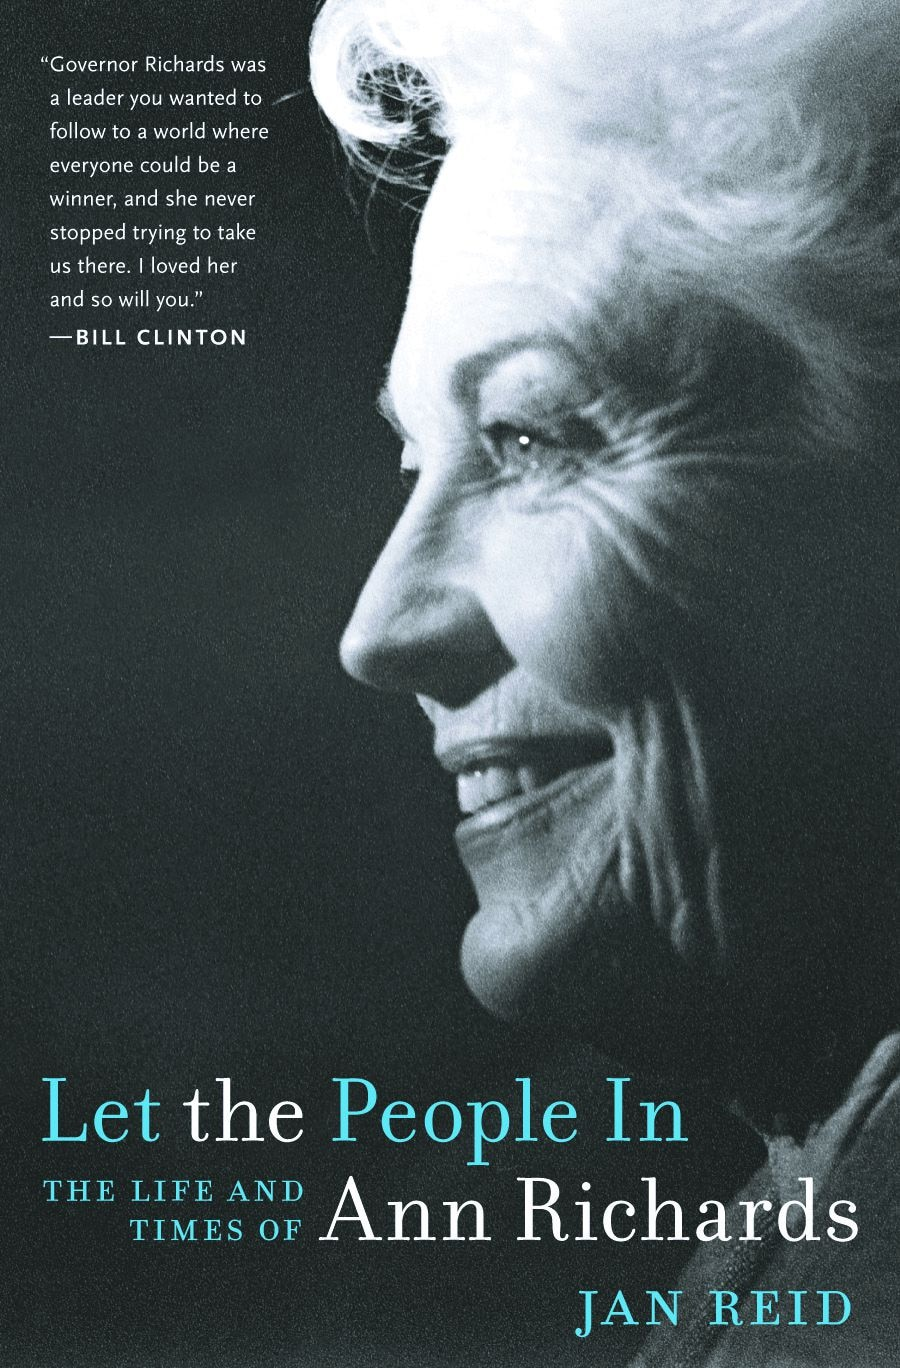 BOOK: LET THE PEOPLE IN - THE LIFE AND TIMES OF ANN RICHARDS by Jan Reid10142012xARTSLIFE